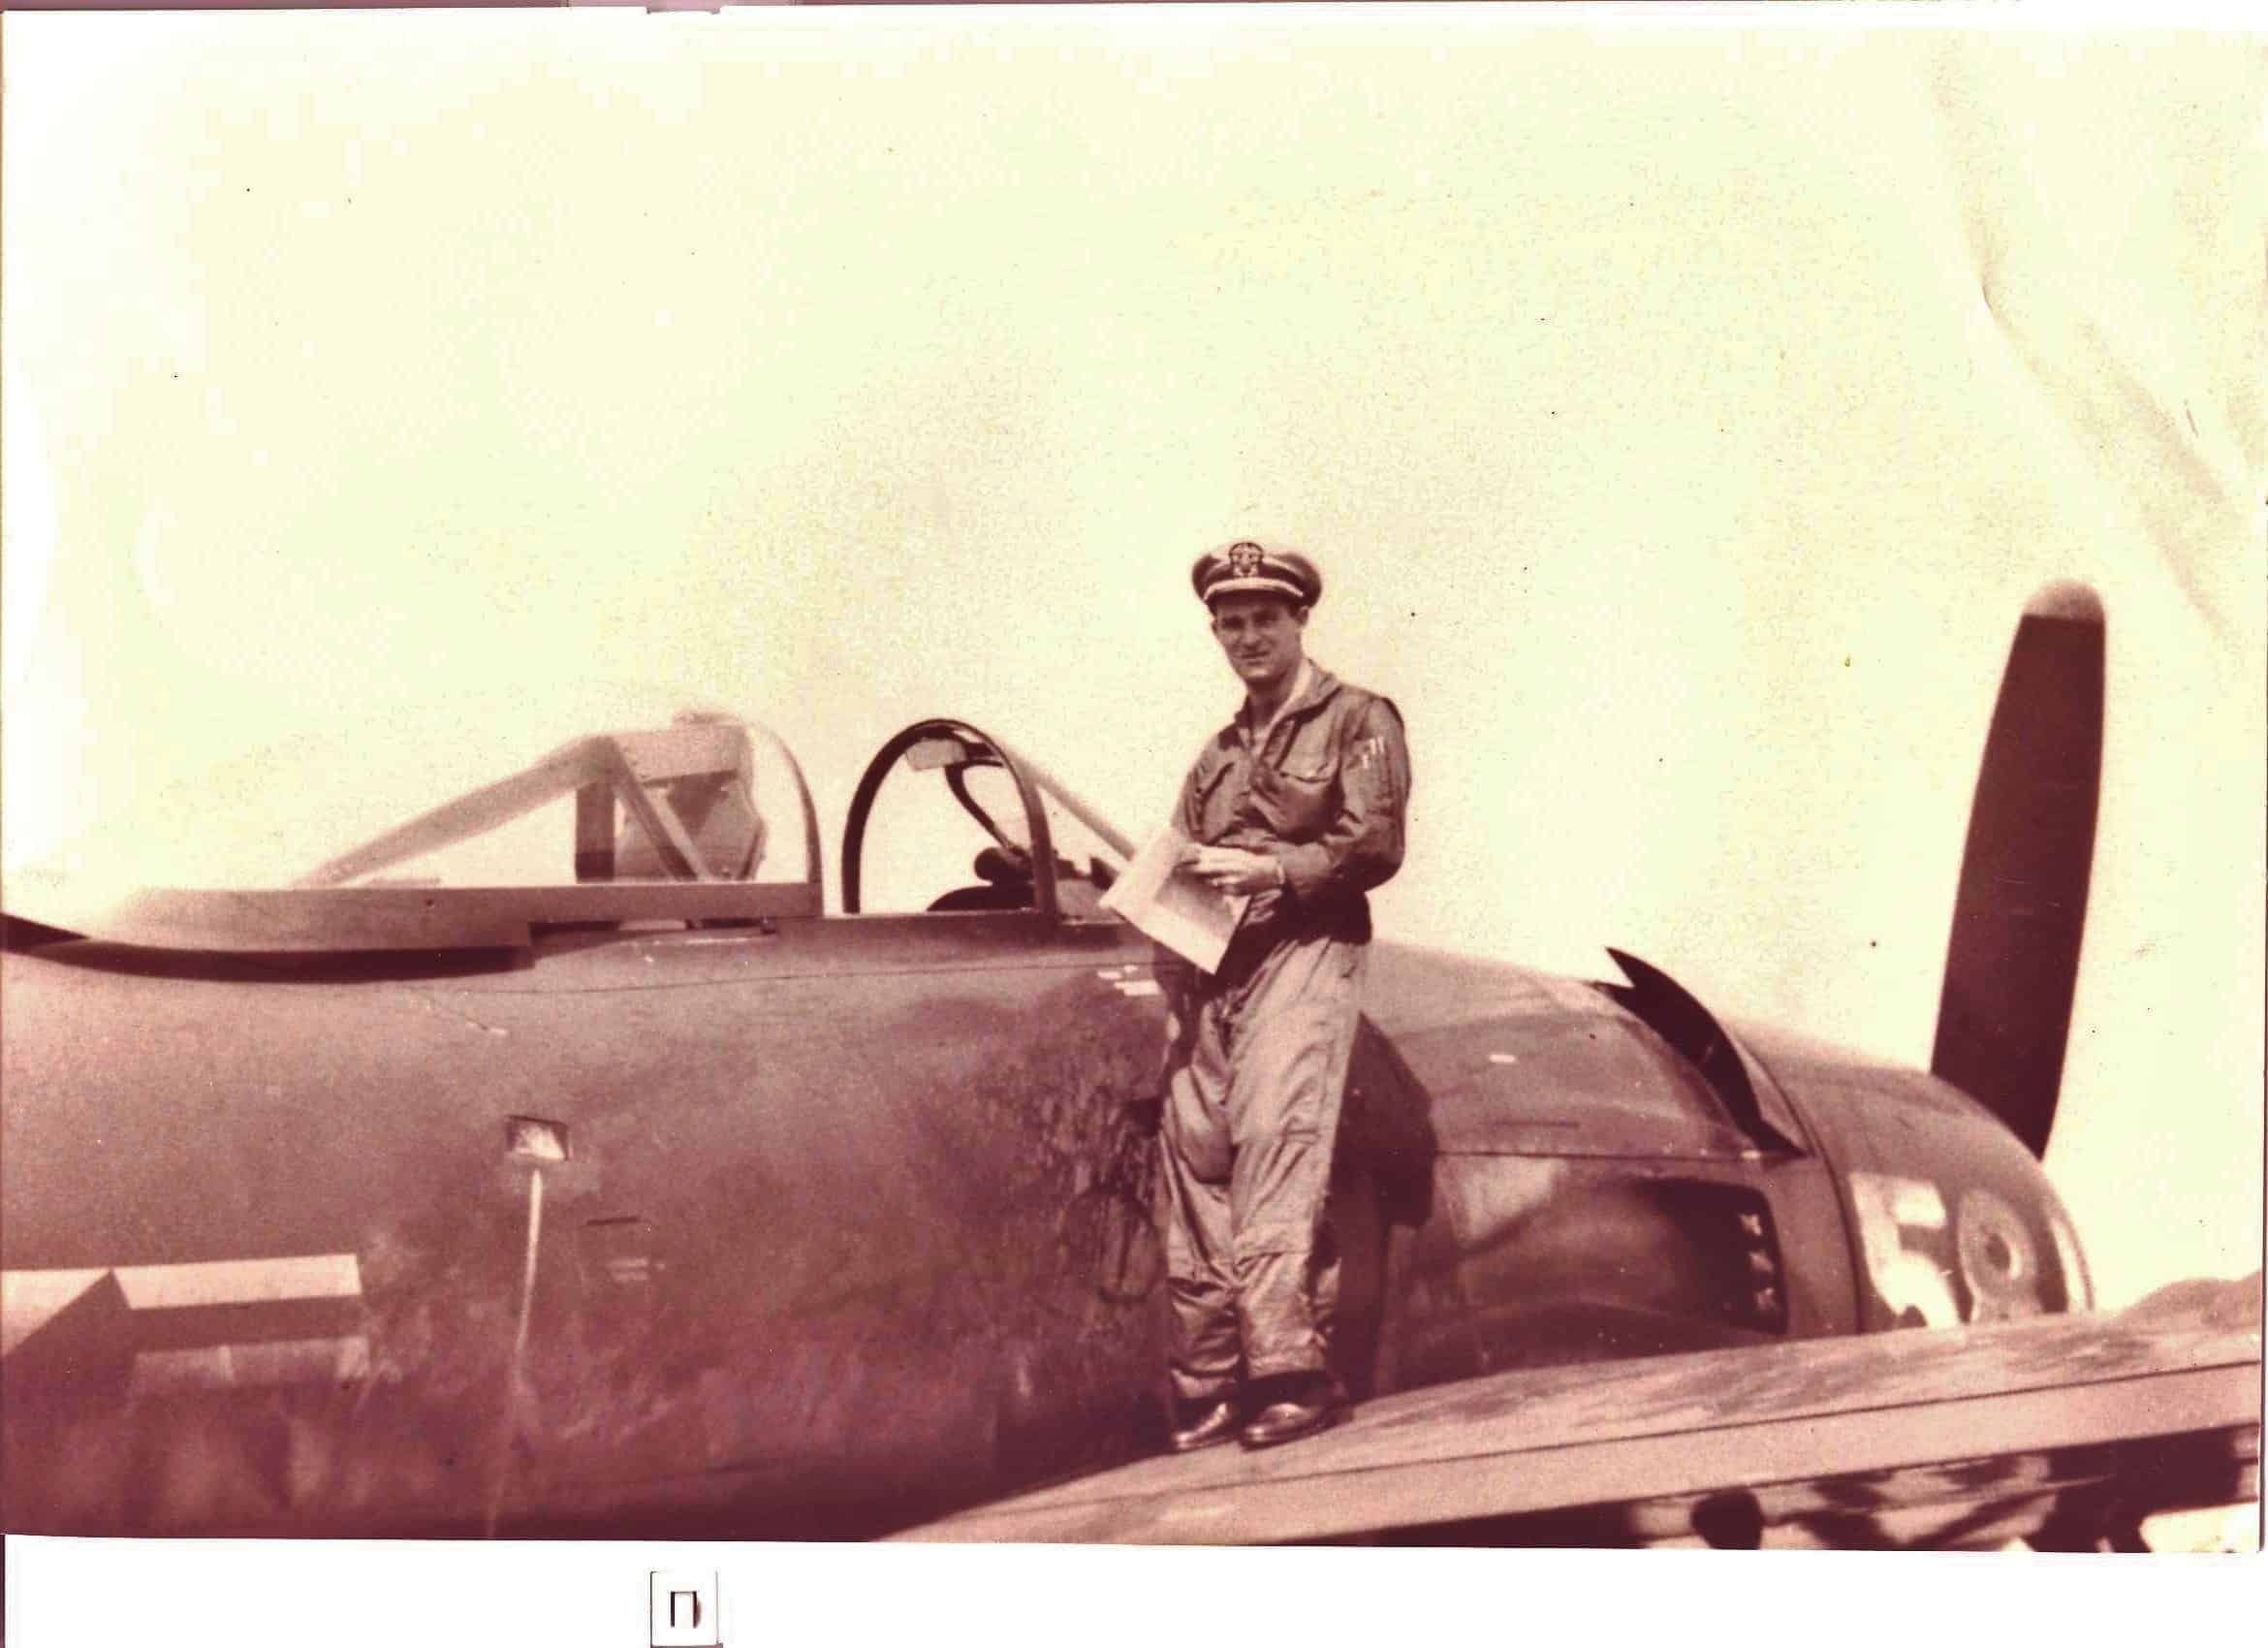 Commander W. T. Spriegel with his Navy plane